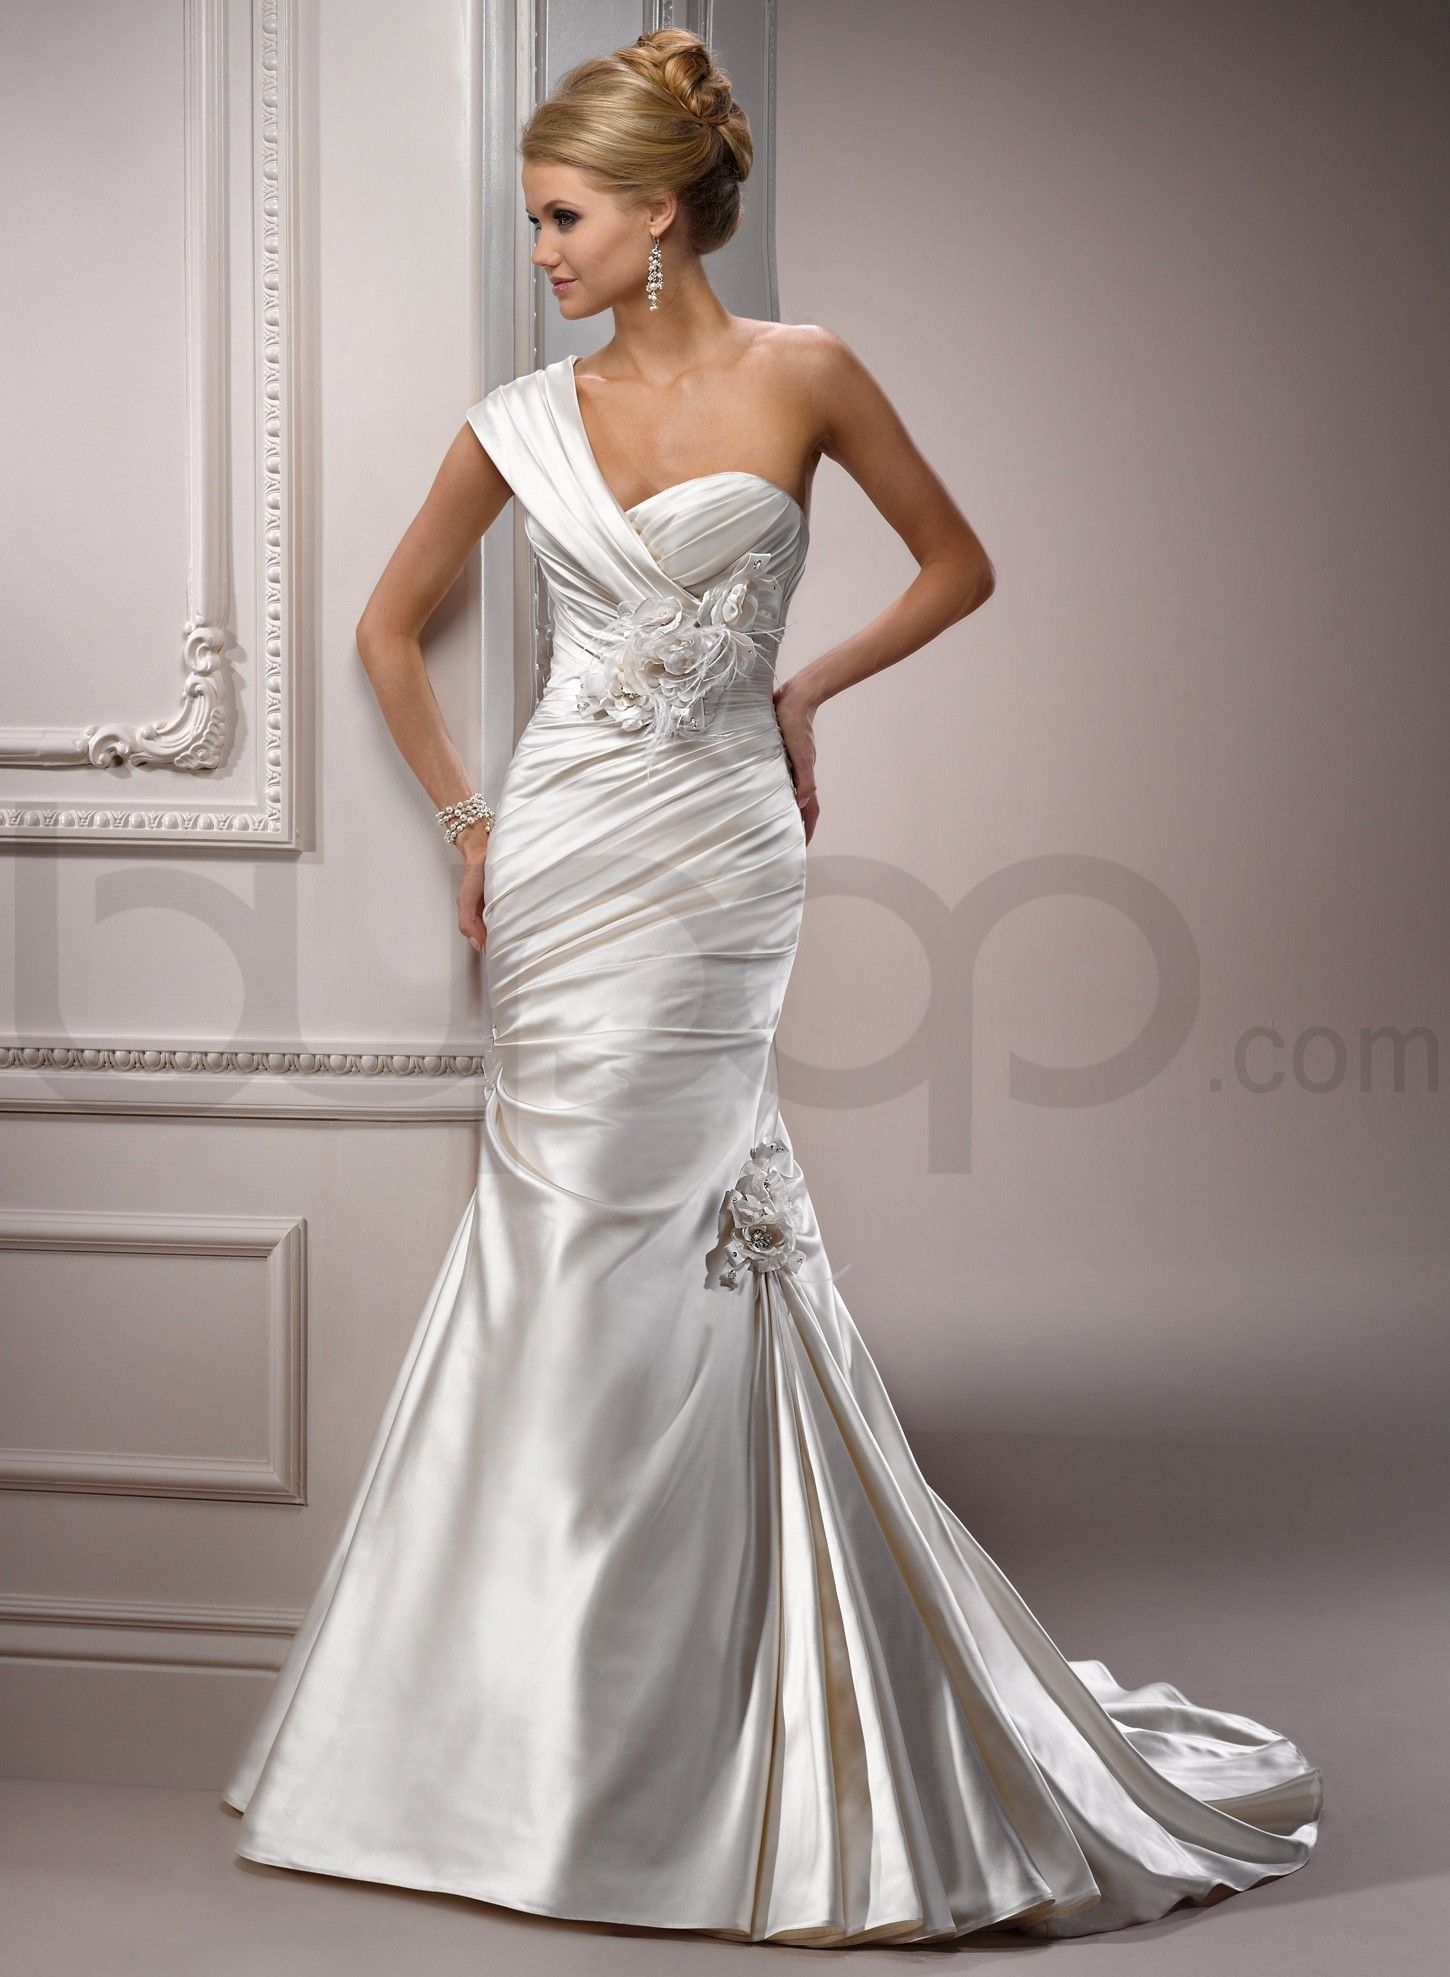 one strap wedding dress AND sweetheart neckline AND ballgown ...